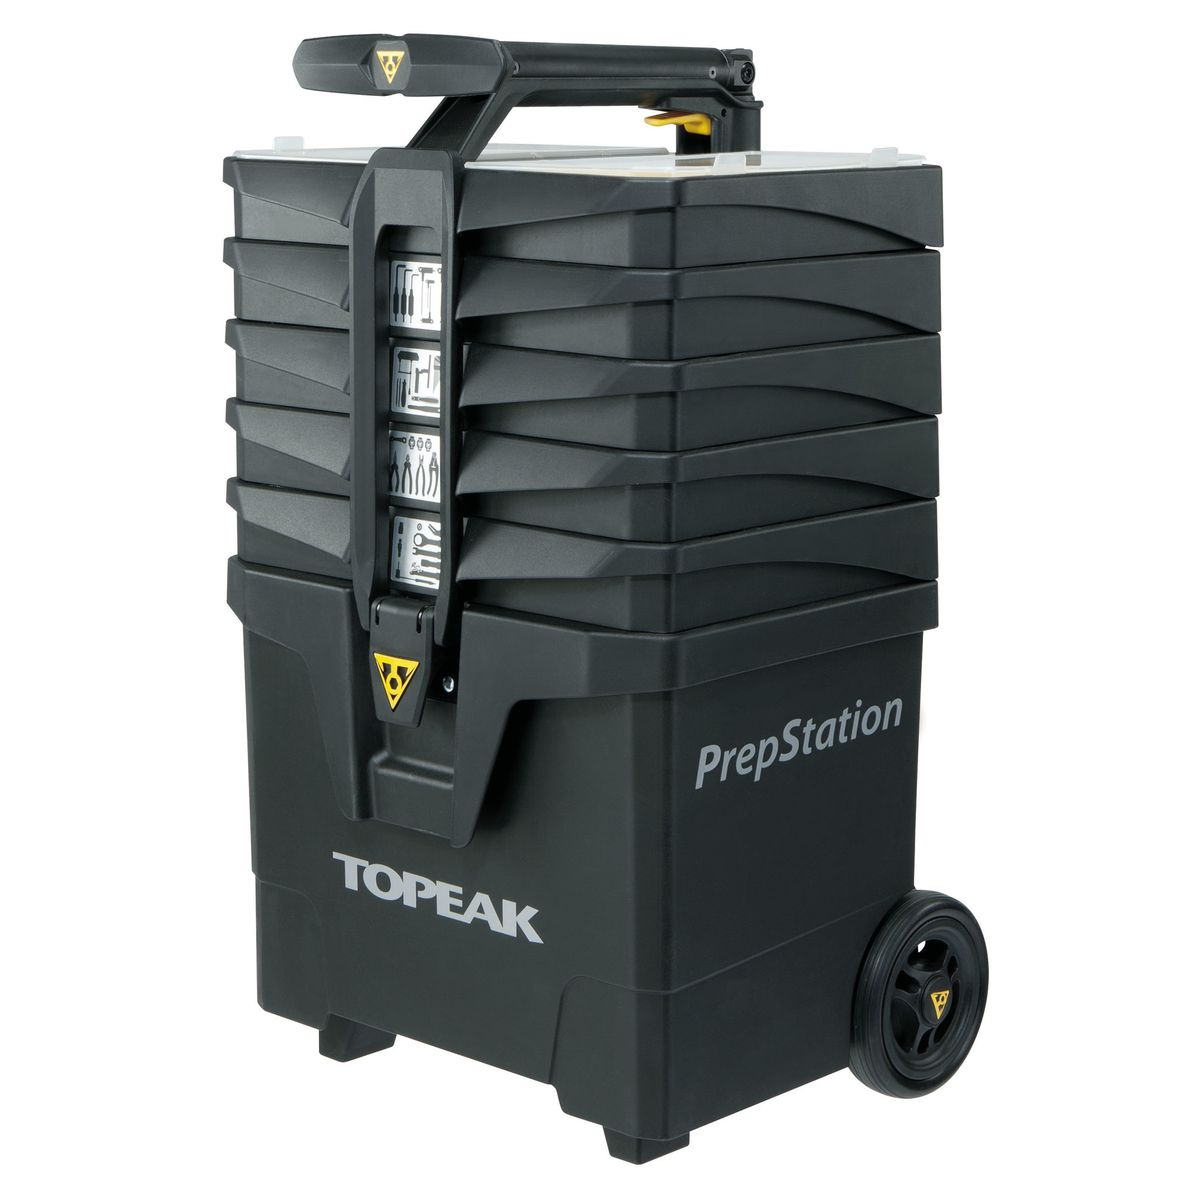 PrepStation tool trolley